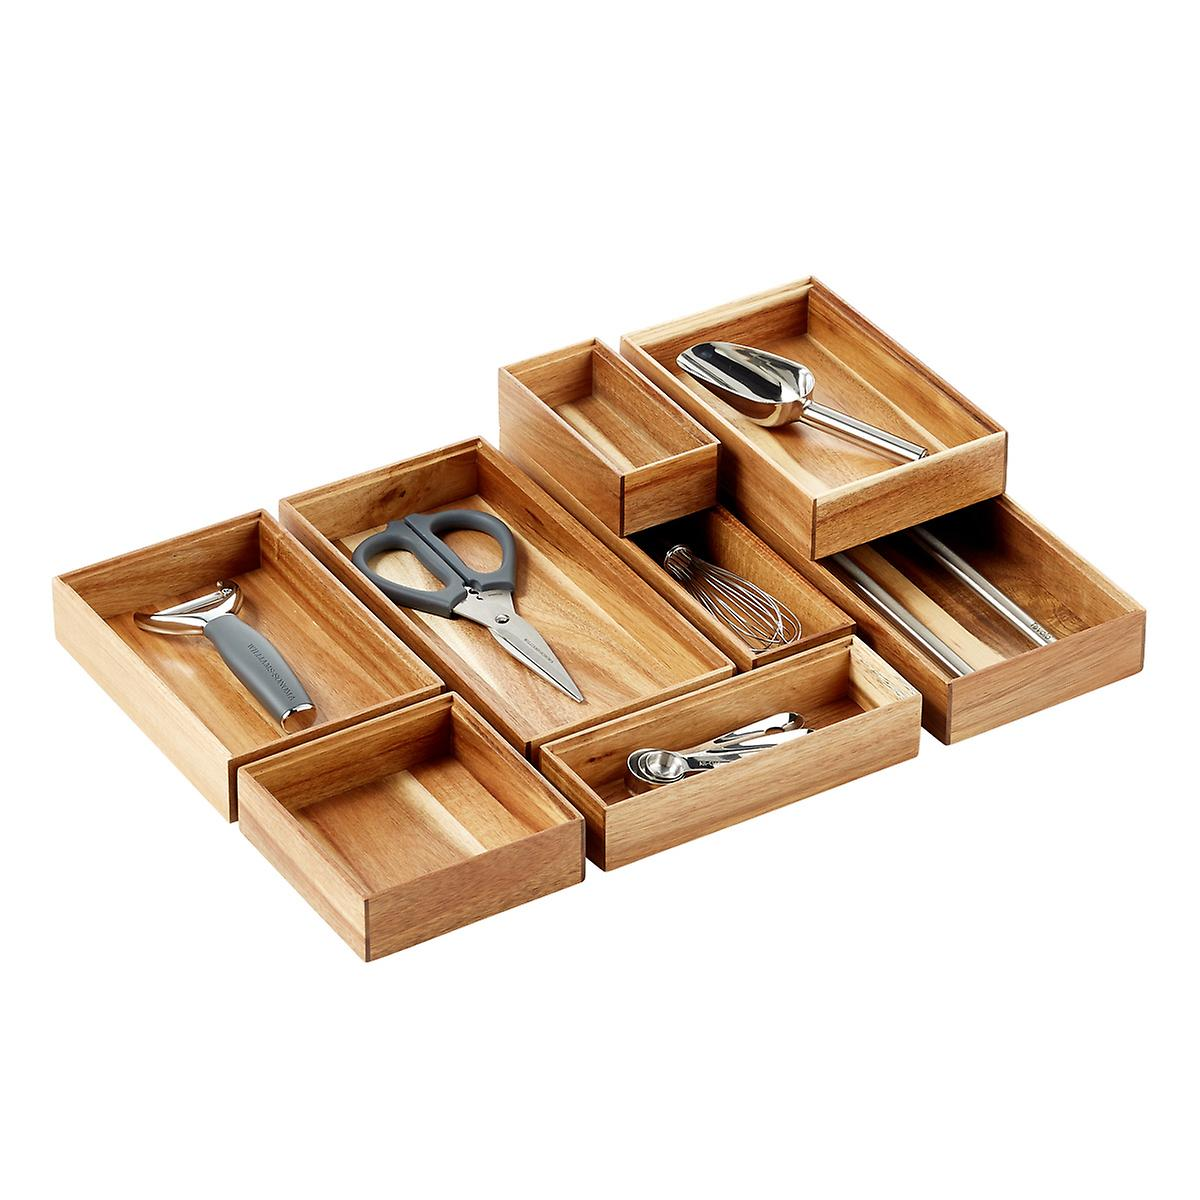 10079620g-Acacia-stackable-drawer-or